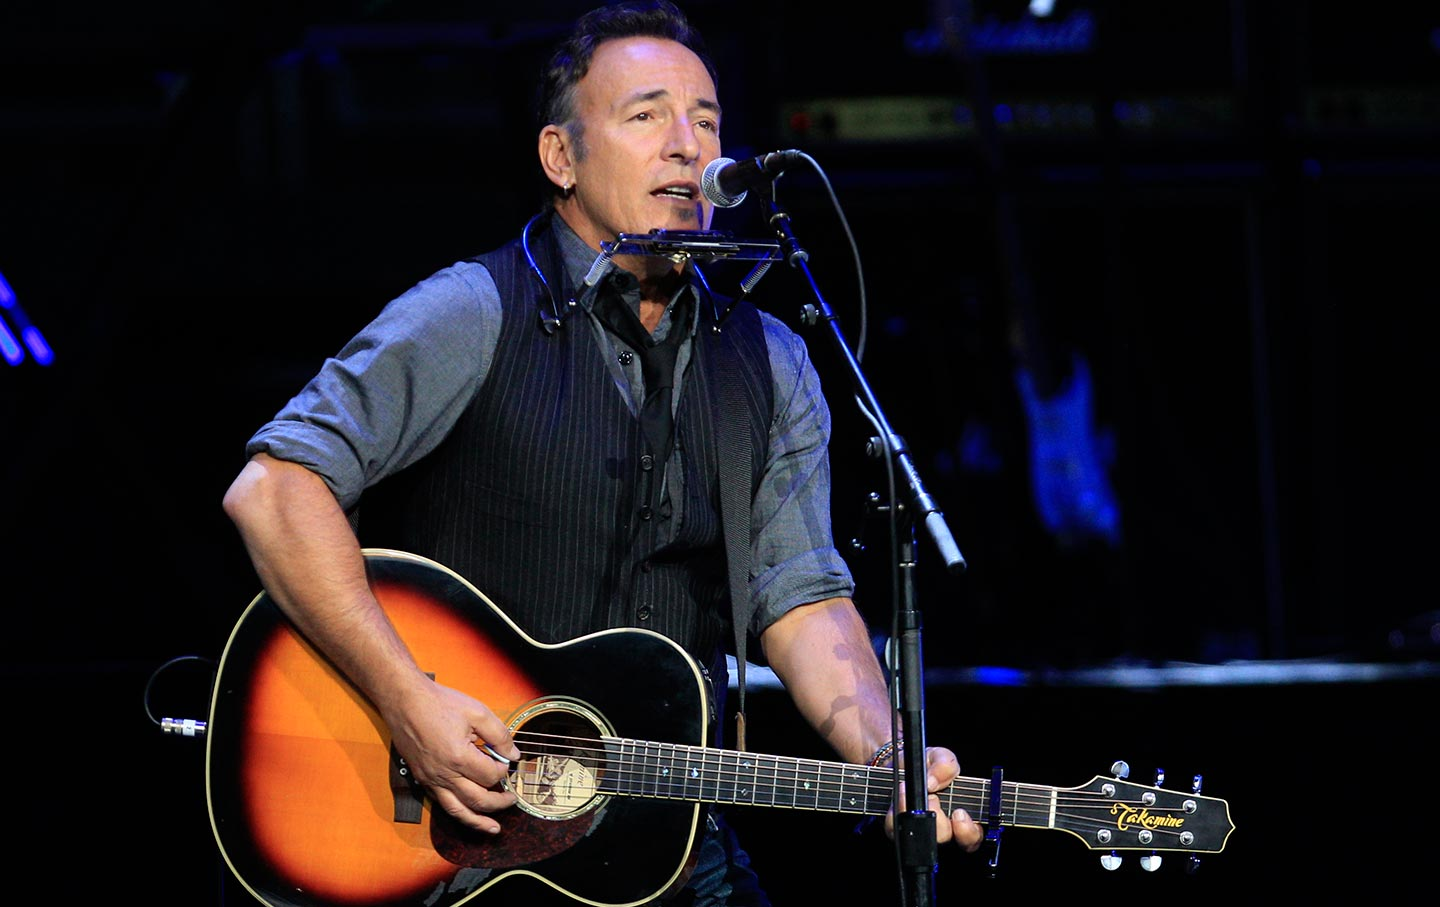 A Plea to Bruce Springsteen: Do a Show for Hillary Clinton ... Bruce Springsteen